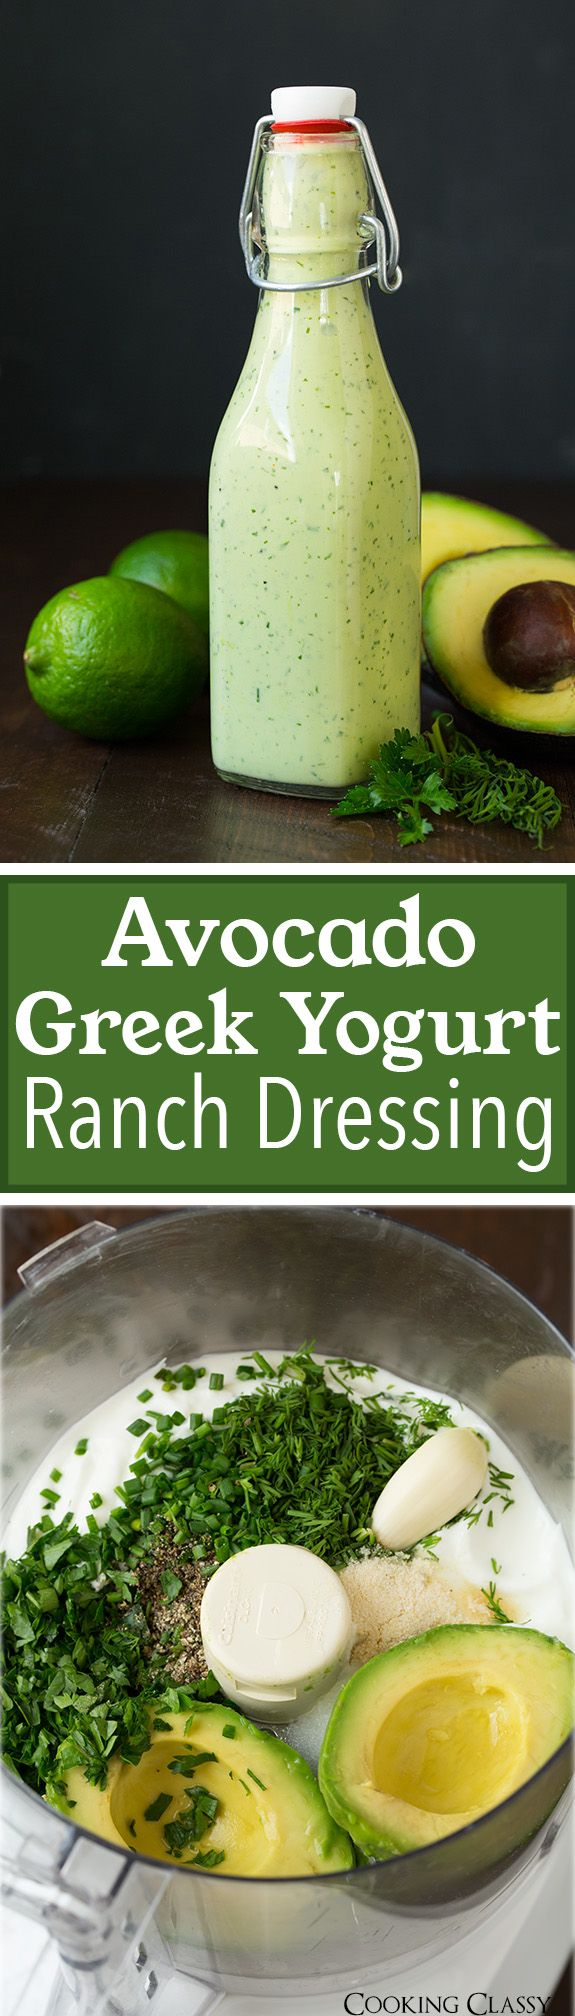 buy sports shoes online india Avocado Greek Yogurt Ranch Dressing | Recipe | Yogurt Ranch Dressing, Greek Yogurt Ranch and Veggie Dips